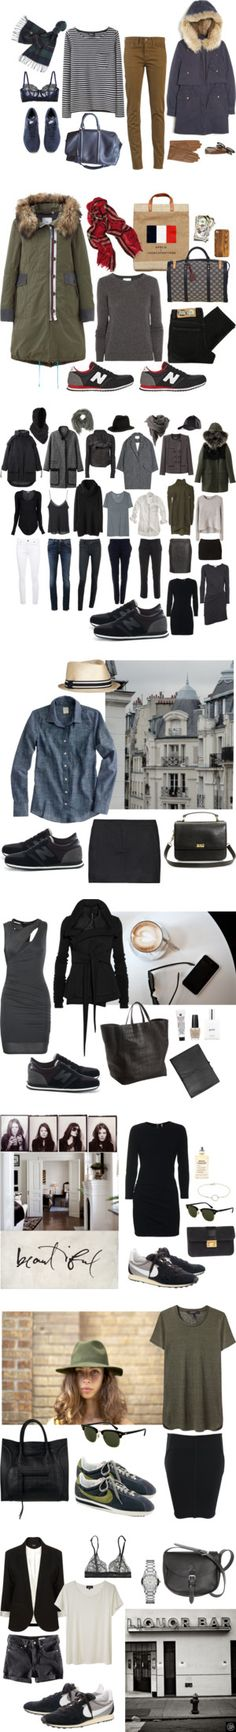 outfits with sneakers(capsule wardrobe ideas Mode Outfits, Casual Outfits, Fashion Outfits, Womens Fashion, Street Looks, Street Style, Fall Winter Outfits, Autumn Winter Fashion, Mode Style